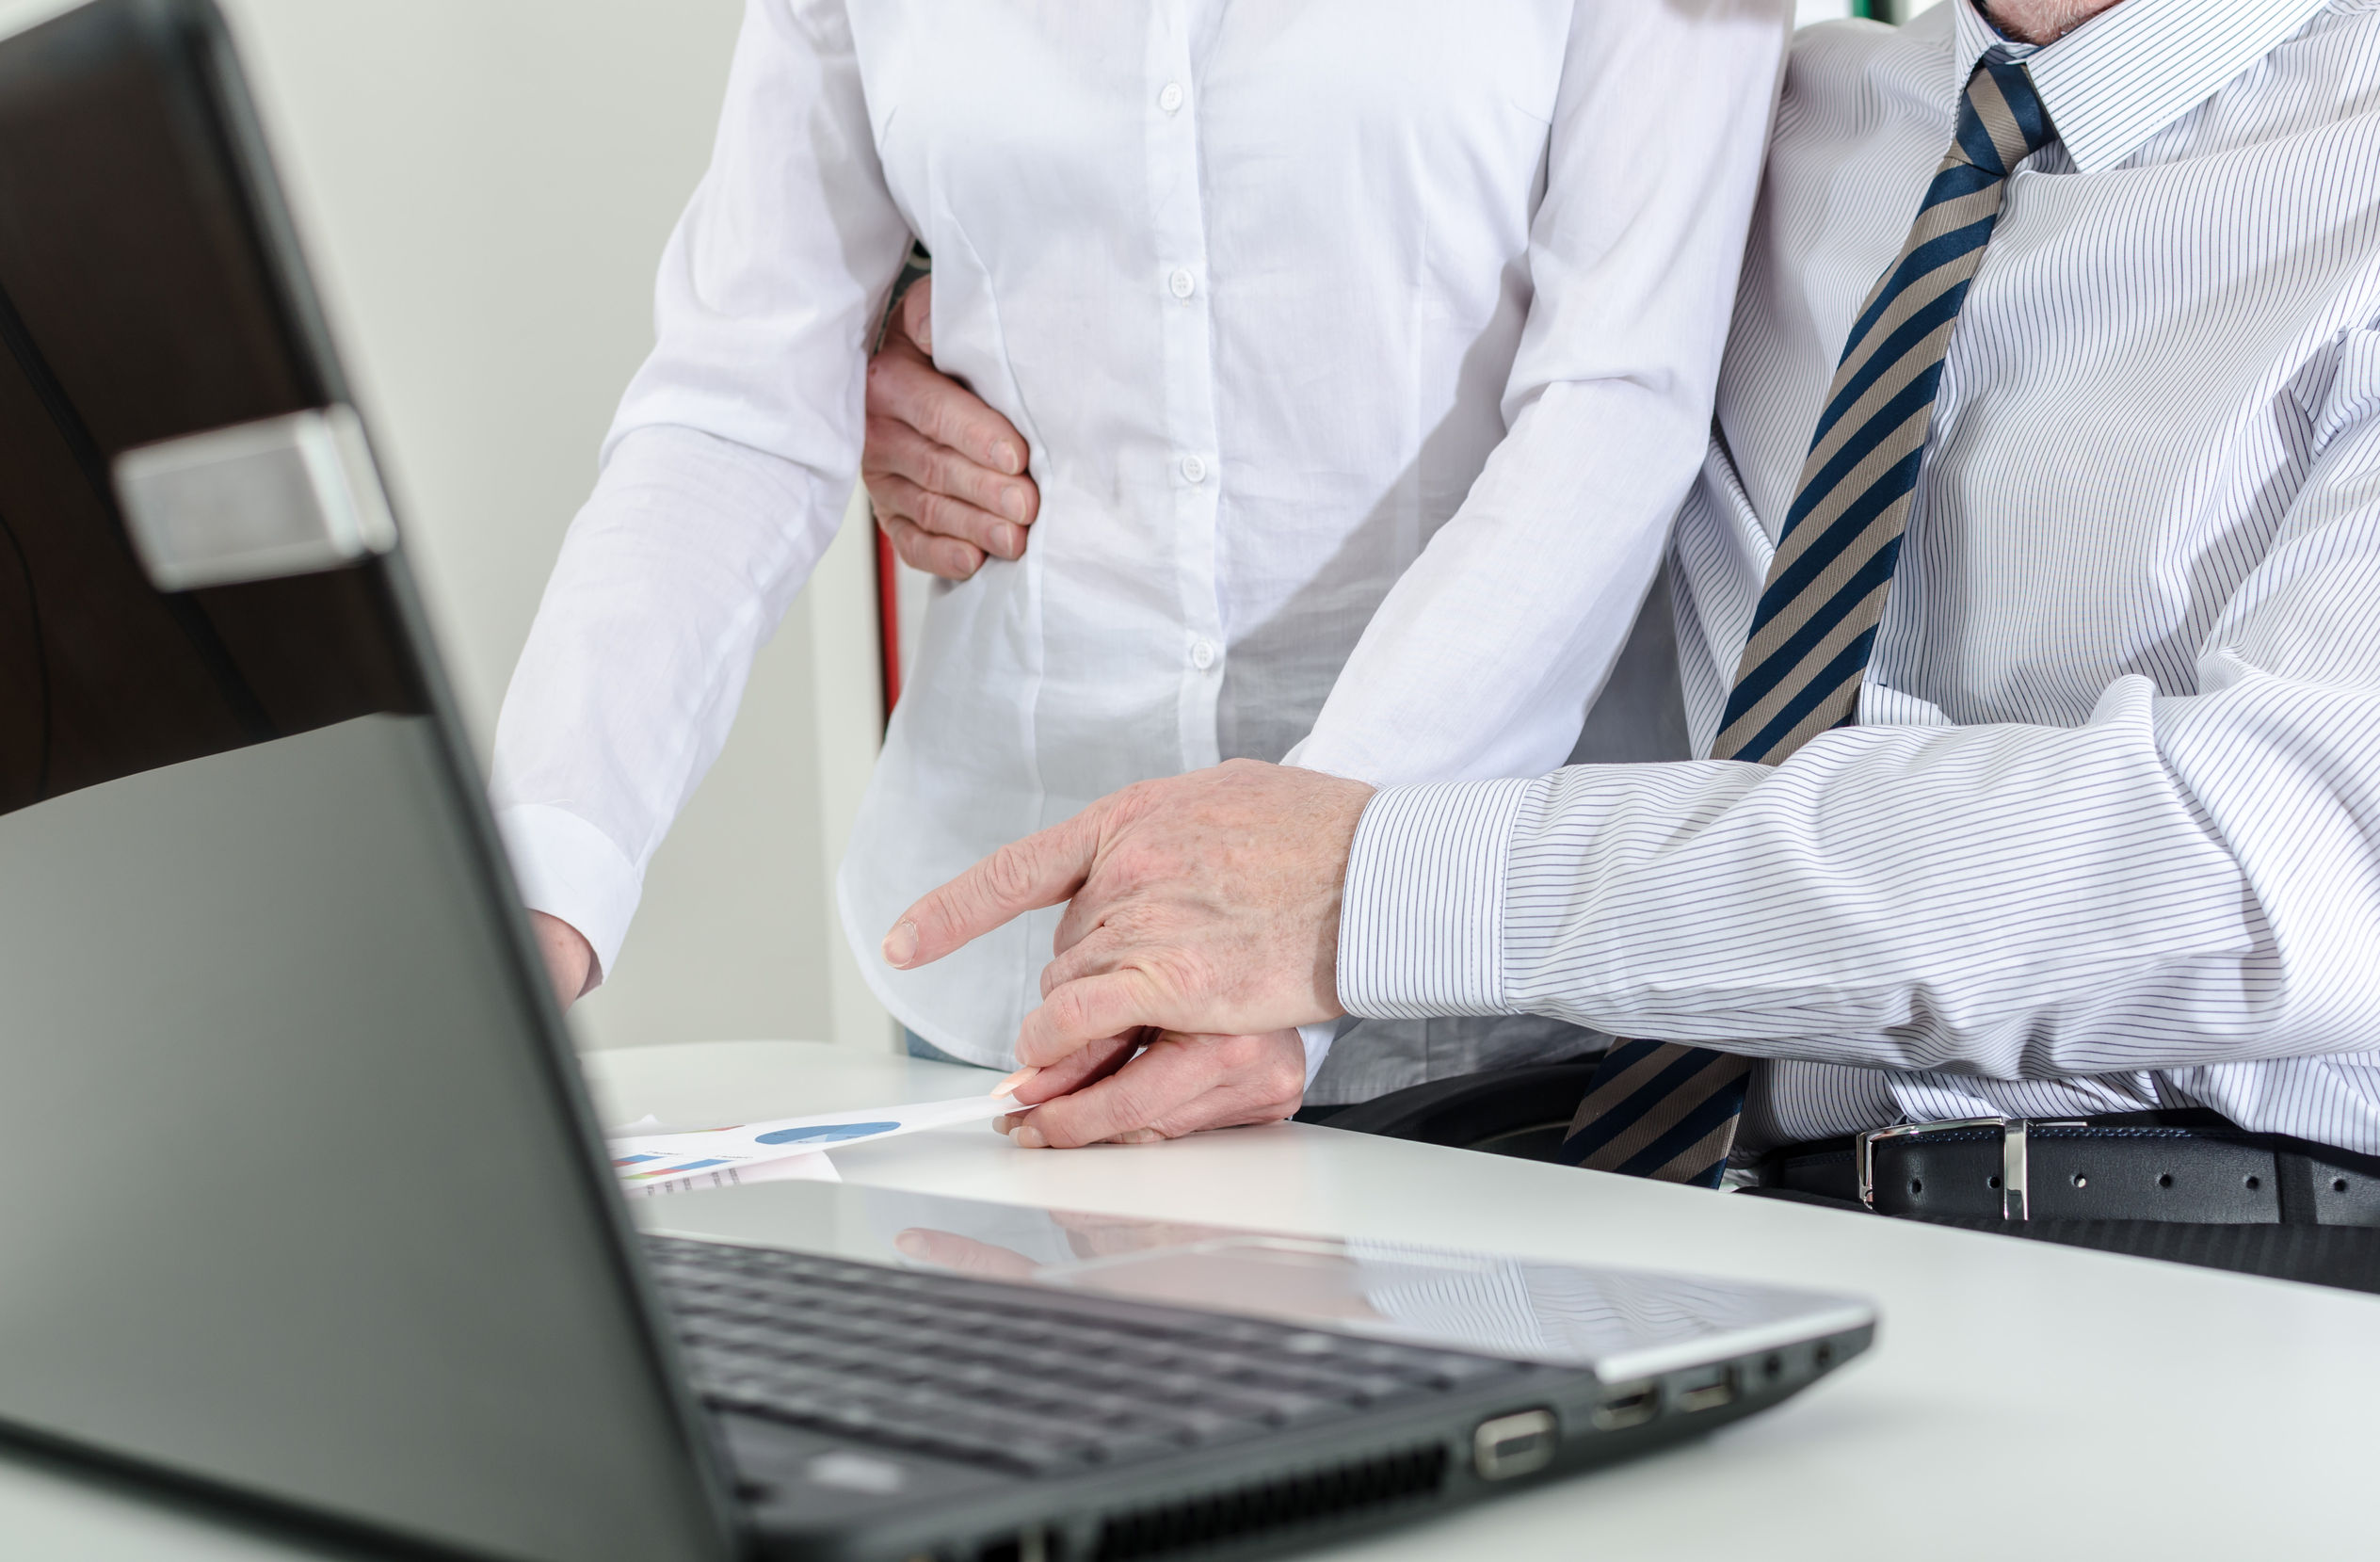 West Palm Beach Sexual Harassment Defense Lawyer